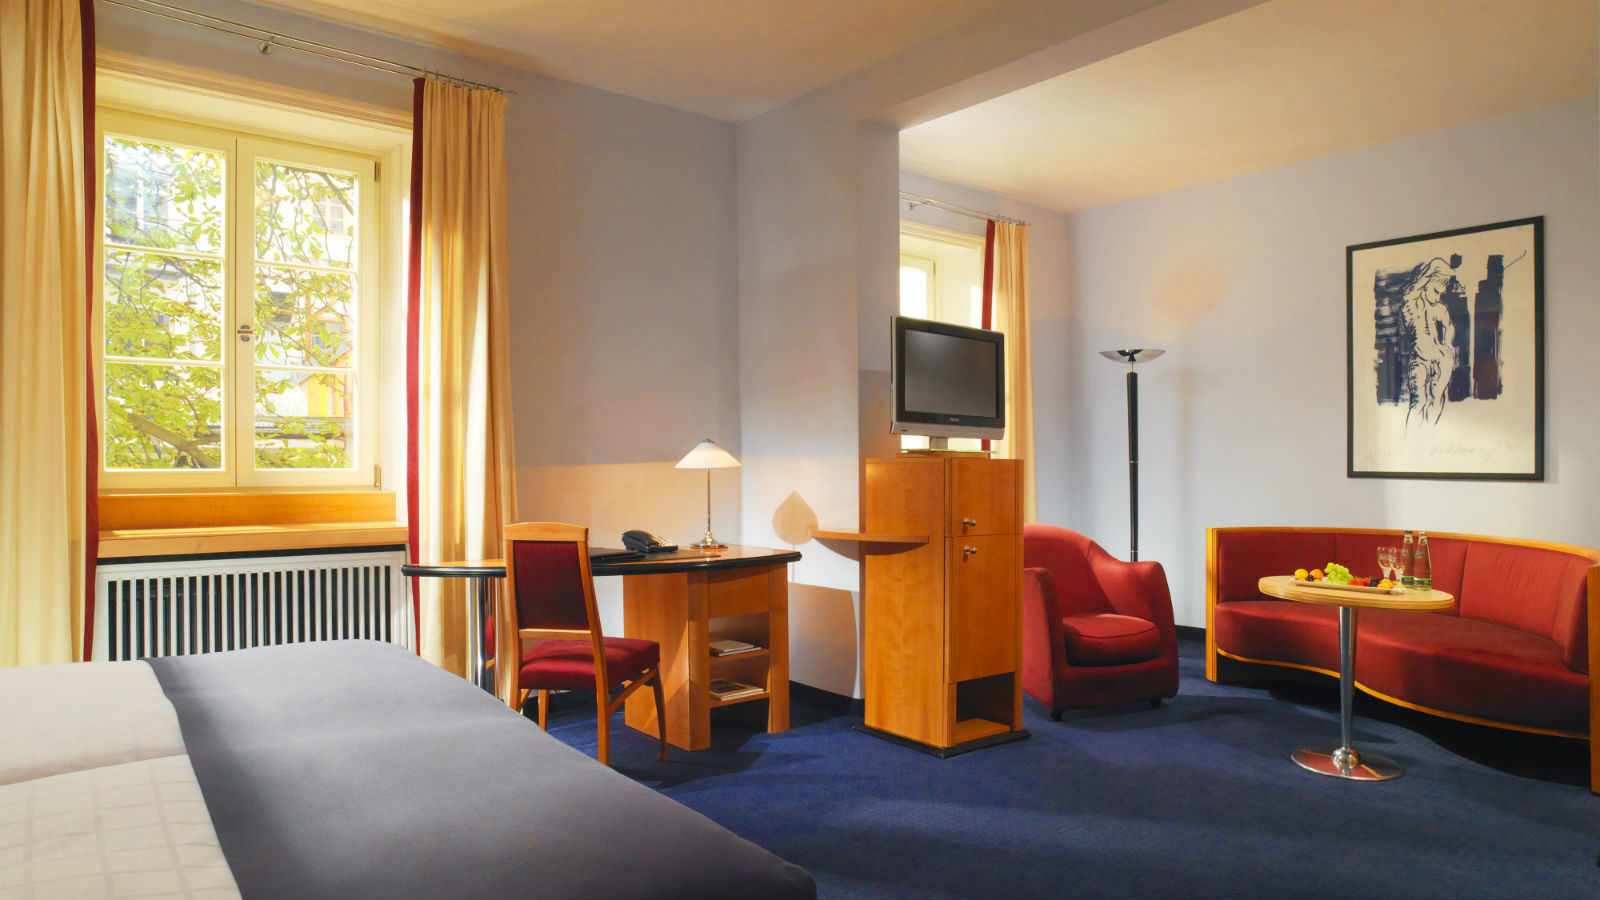 Junior Suite at Hotel Elephant Weimar